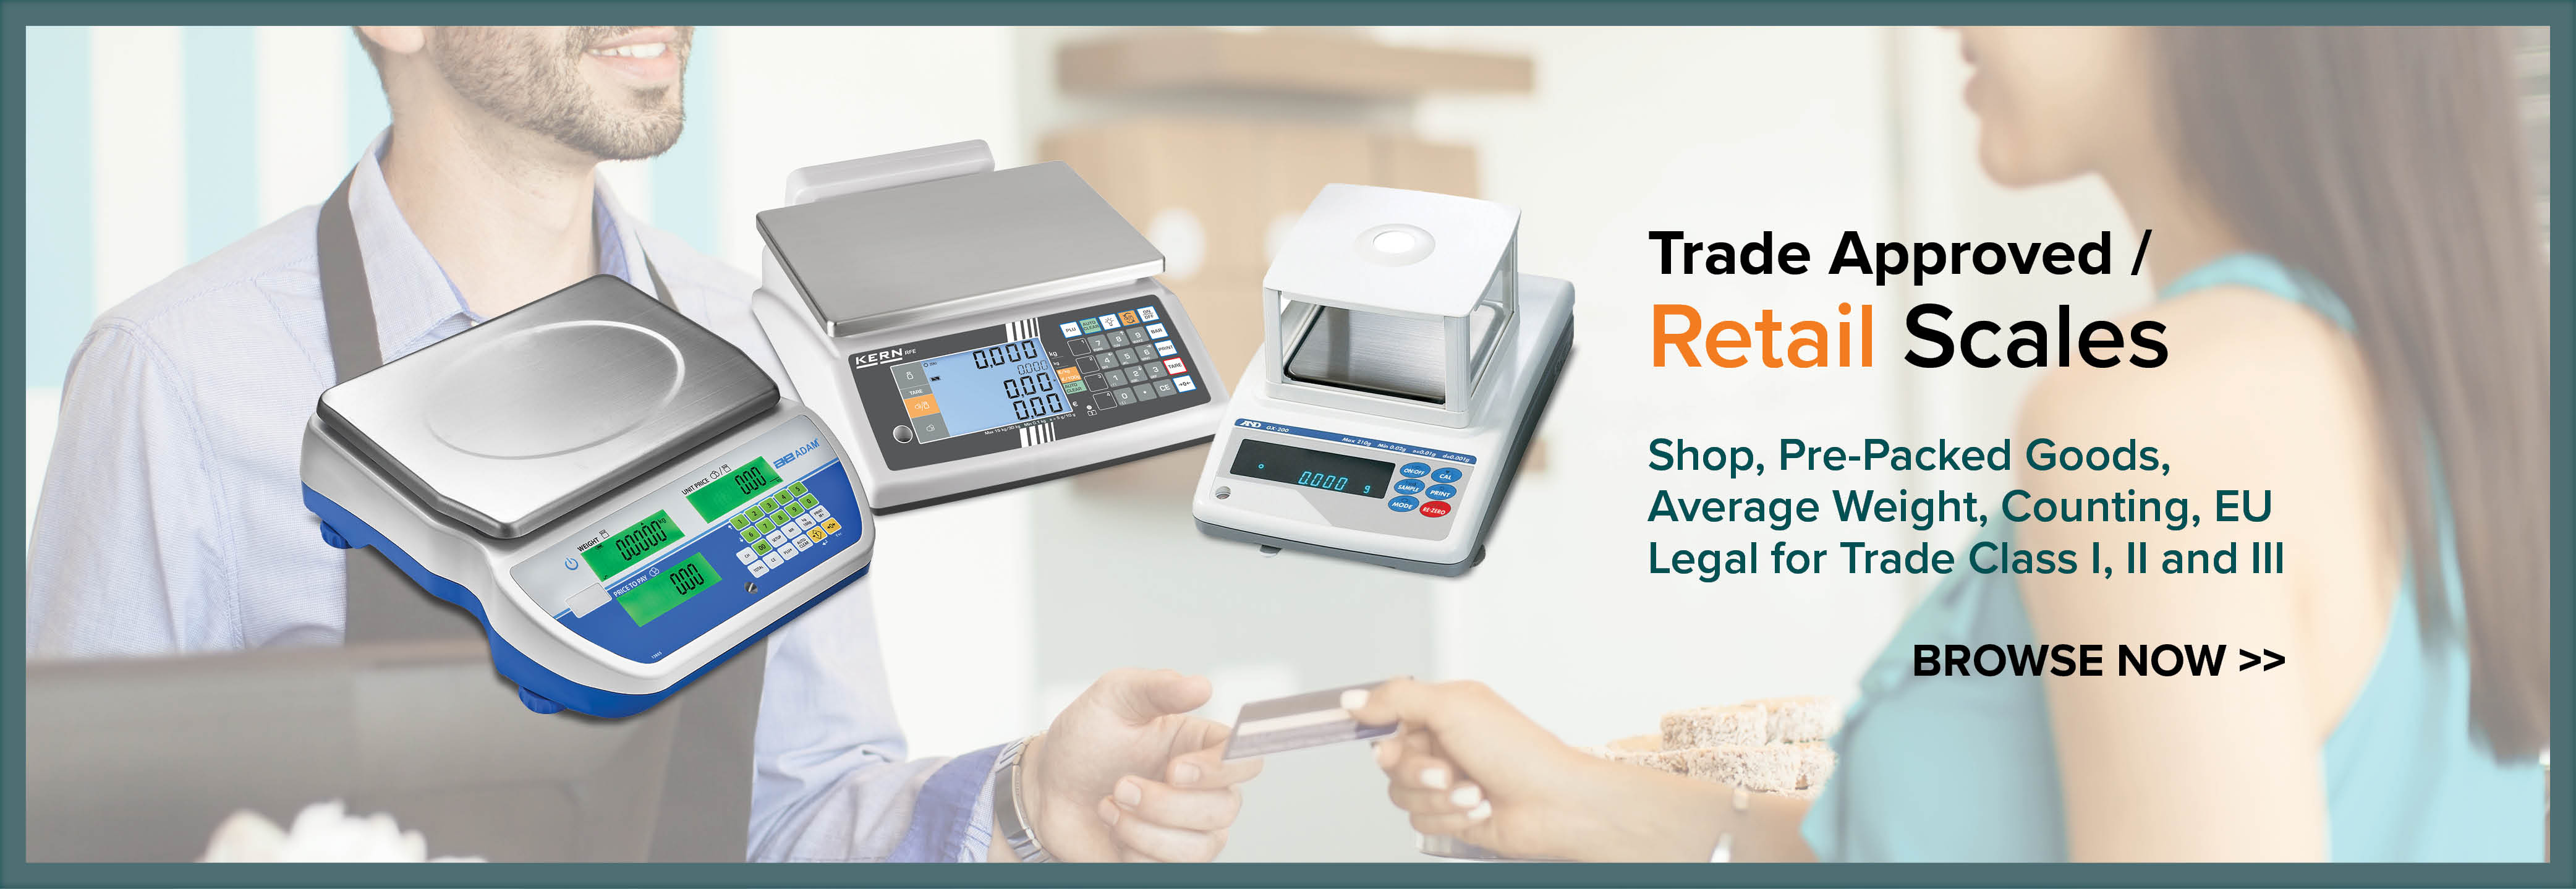 Trade Approved / Retail Scales - Shop, Pre-Packed Goods. Average Weight, Counting, EU Legal for Trade Class I, II and III. Browse now.